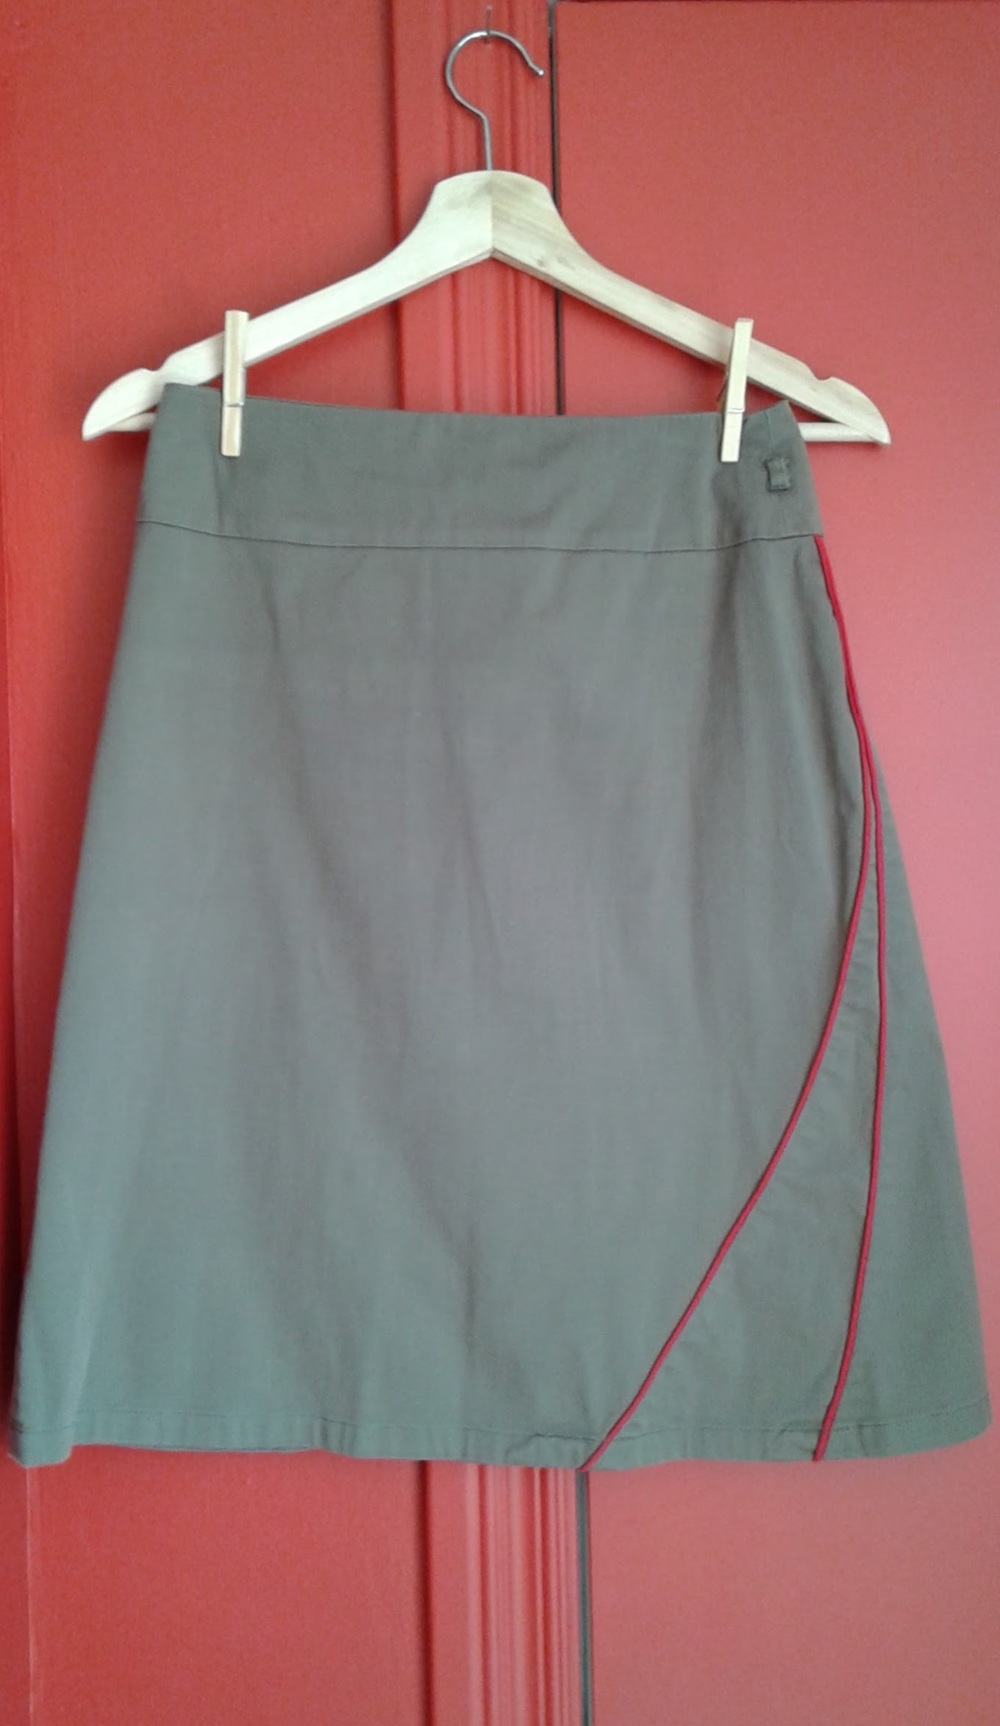 Geek Boutique skirt; size S, $28